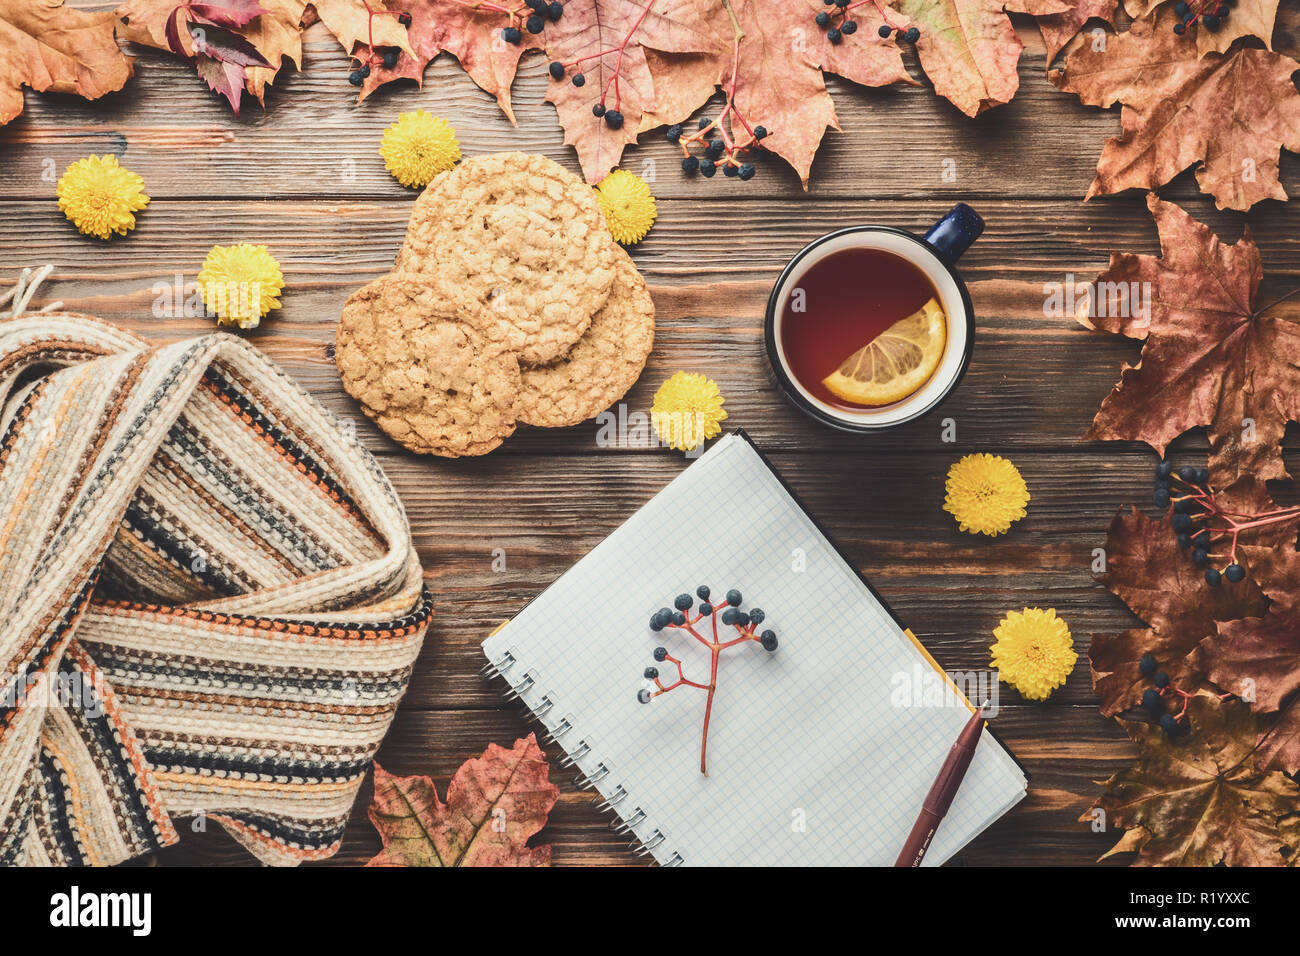 Autumn fashion seasonal concept Scandinavian knitted scarf cup hot black tea coffee homemade oatmeal cookies Fall fallen maple leaves on wooden table with notebook pen Flat lay Top view vintage style. Stock Photo